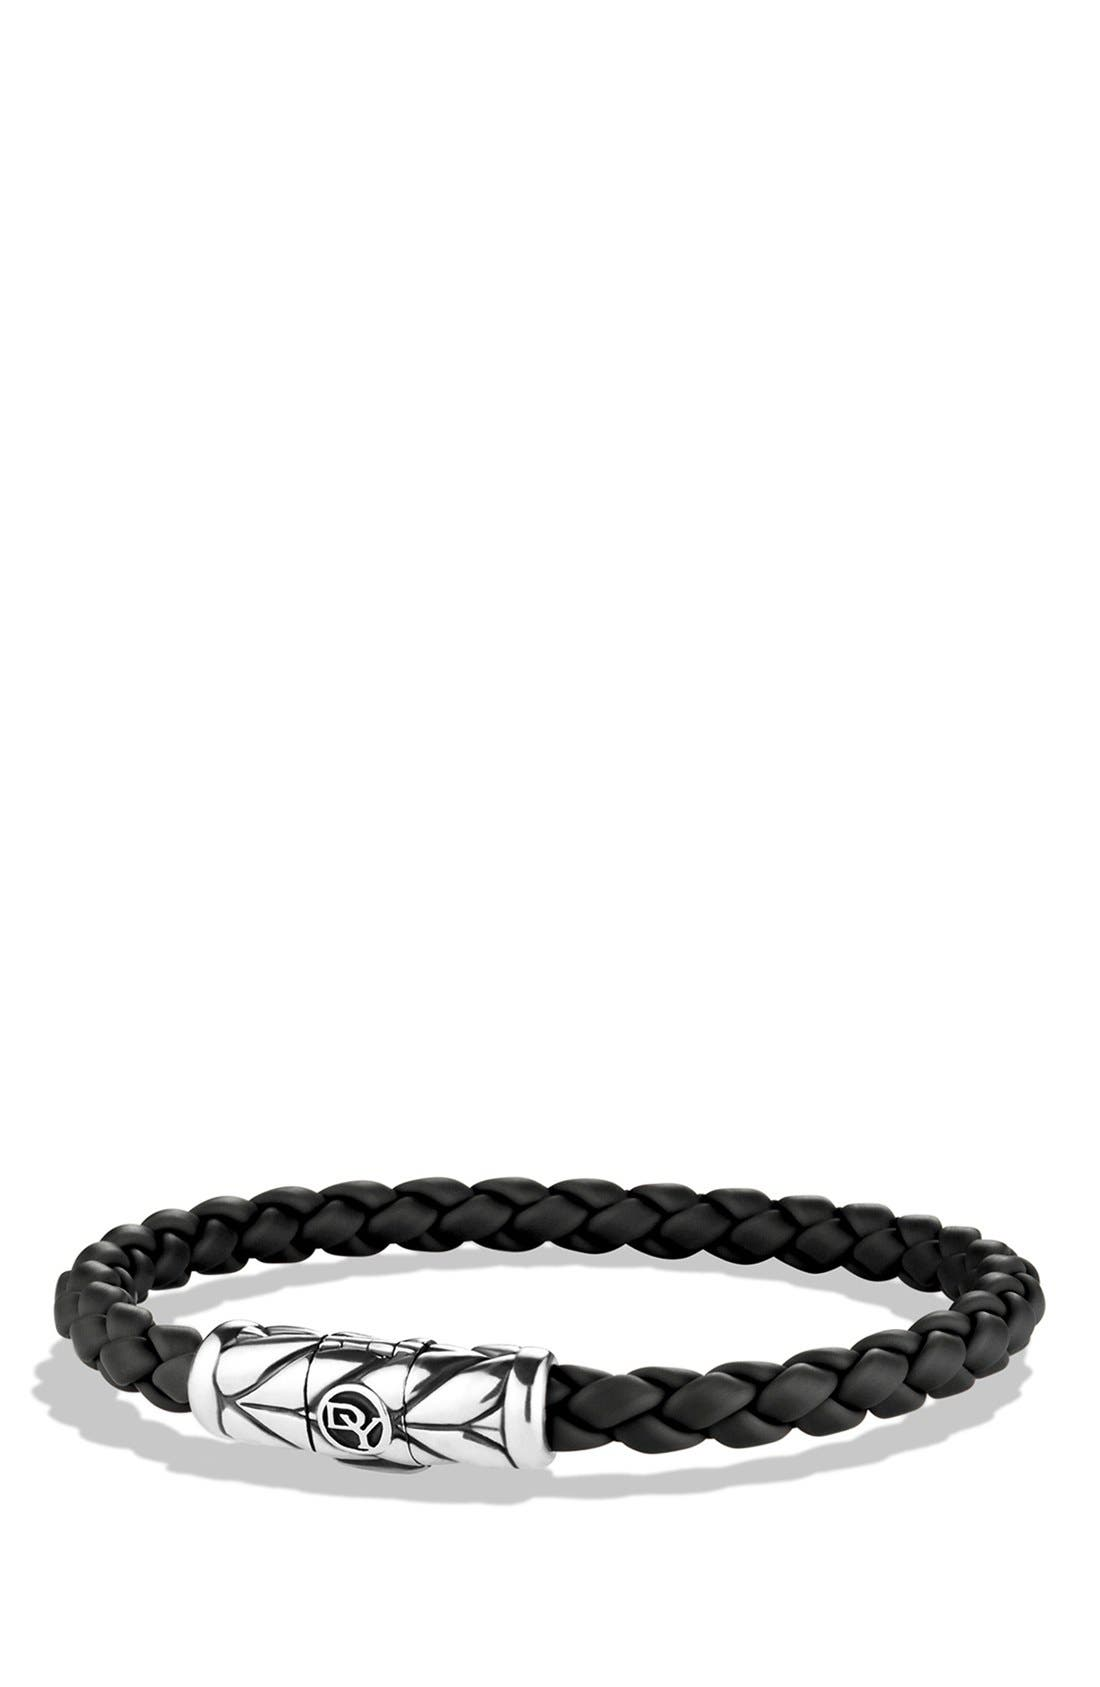 Alternate Image 1 Selected - David Yurman 'Chevron' Woven Rubber Bracelet